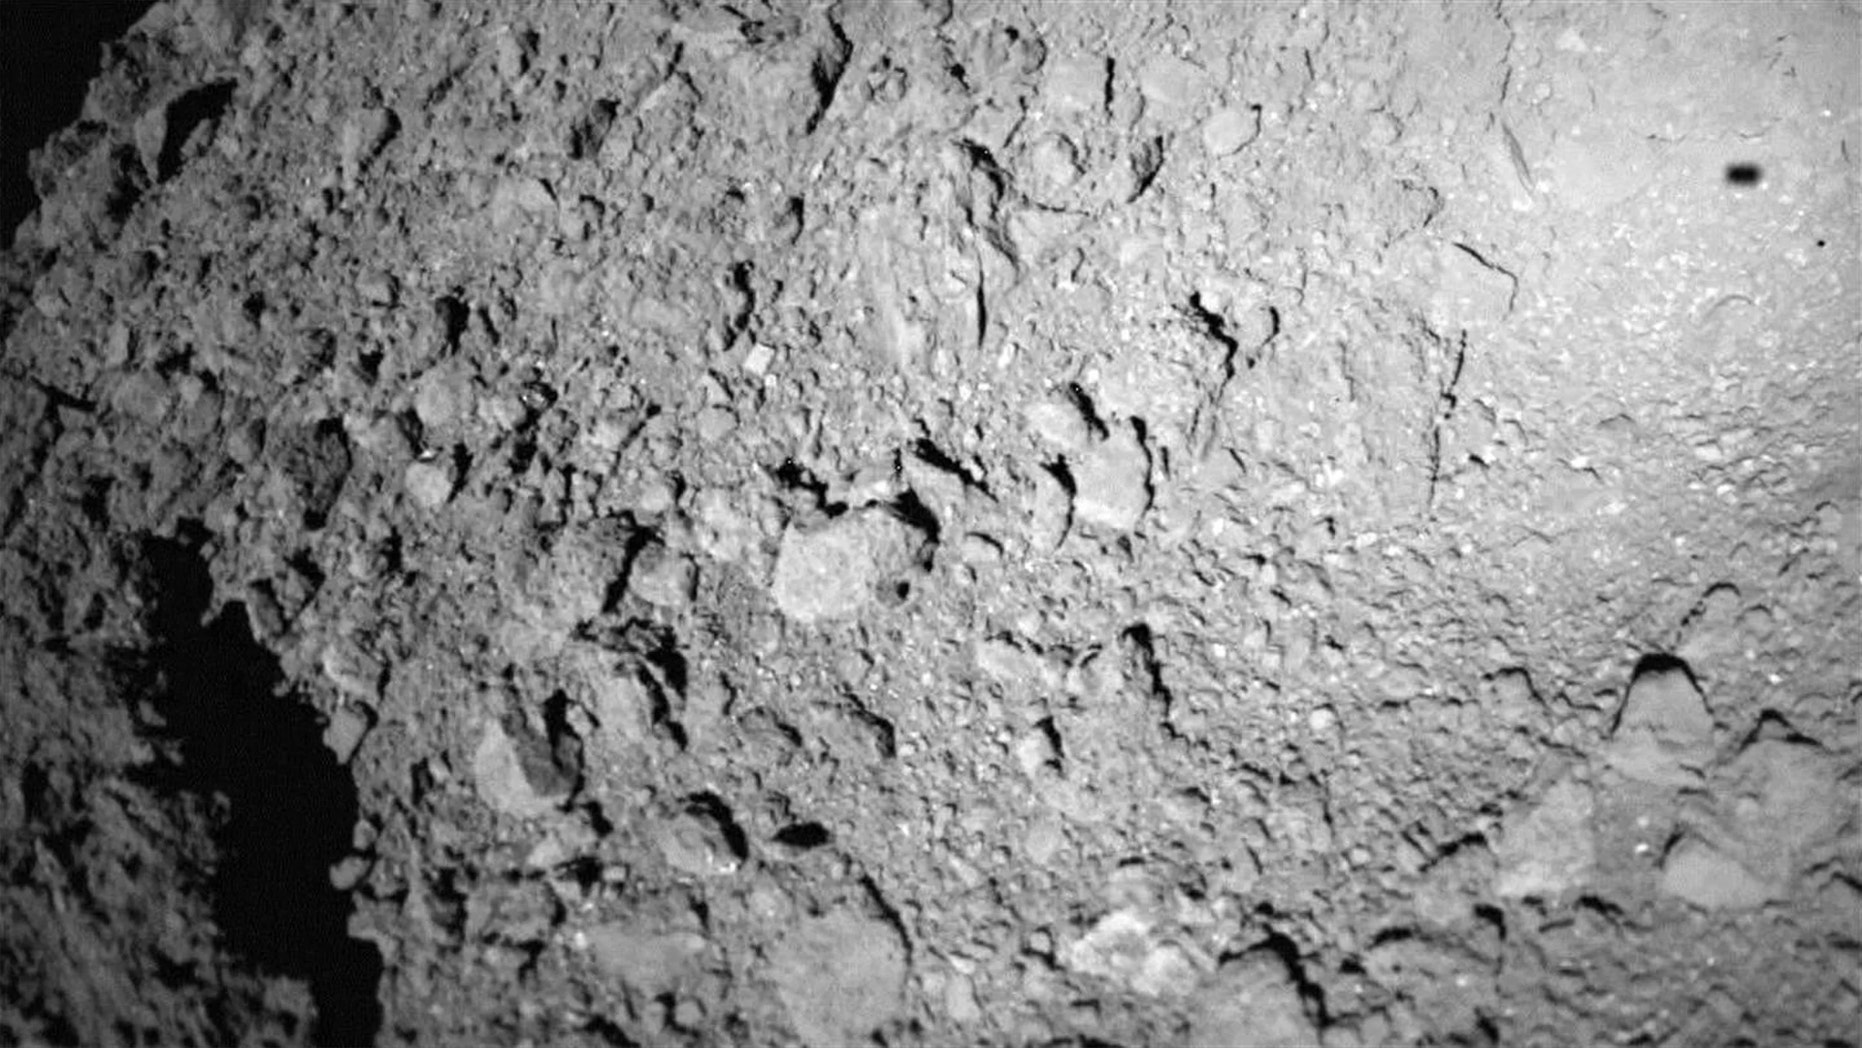 The German-French Mobile Asteroid Surface Scout (MASCOT) lander captured this photo of asteroid Ryugu during landing operations on Oct. 3, 2018. The lander's shadow is visible at upper right. Credit: German Aerospace Center (DLR)